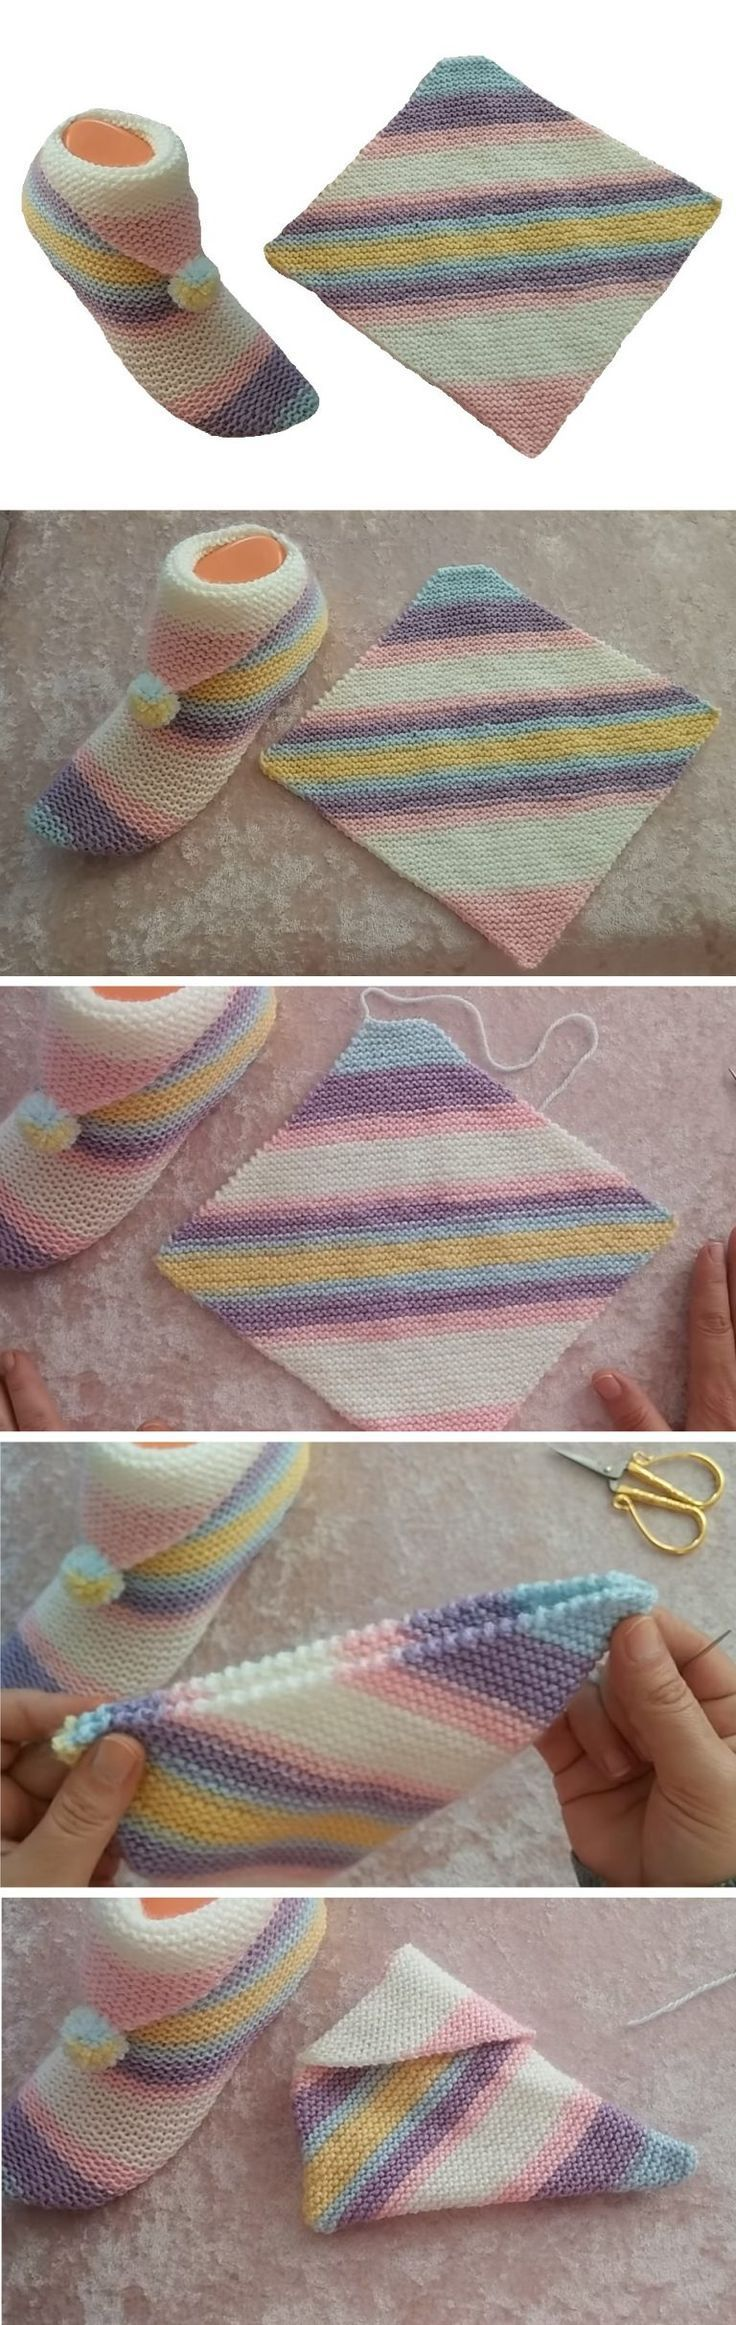 Simple Step by Step Slippers Tutorial – #ideen #si…